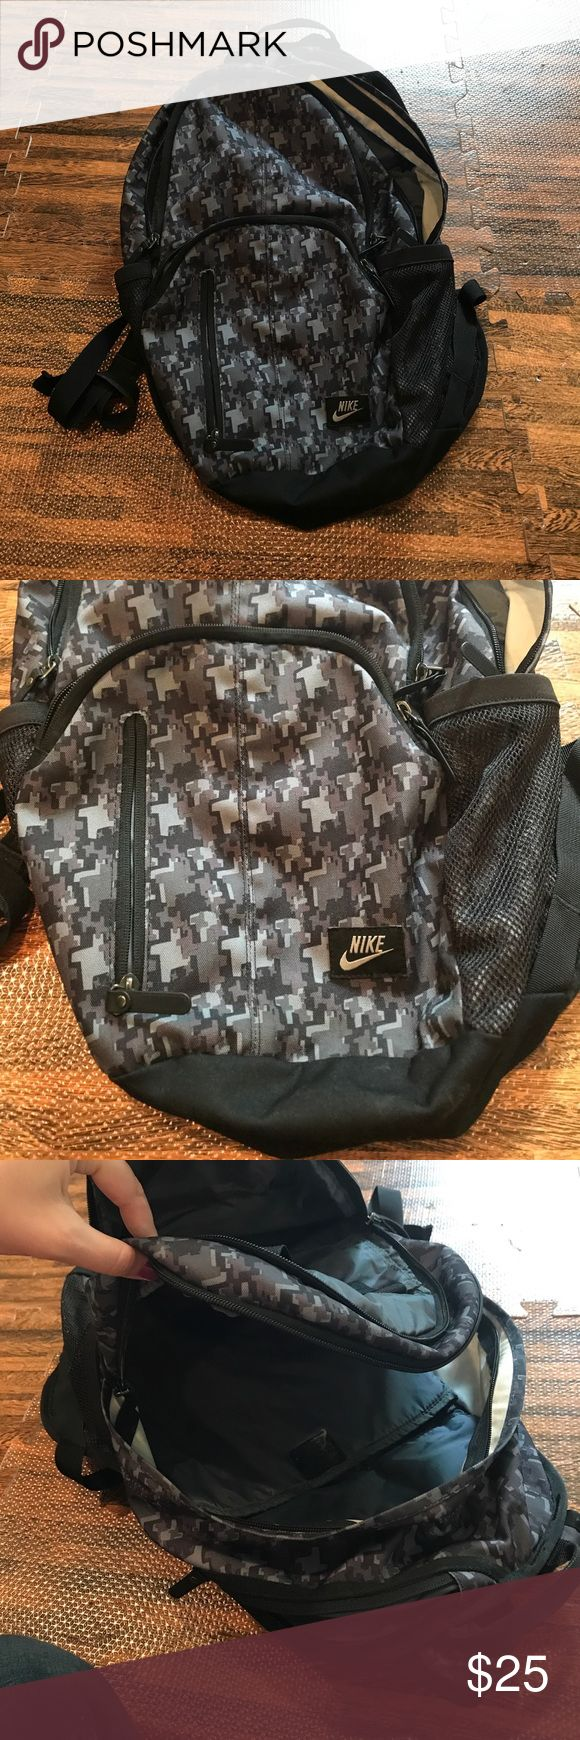 Nike backpack Great backpack with lots of zippered compartments to store stuff as well as 2 mesh pockets on the sides great for water bottles! Used but still in good condition Nike Bags Backpacks